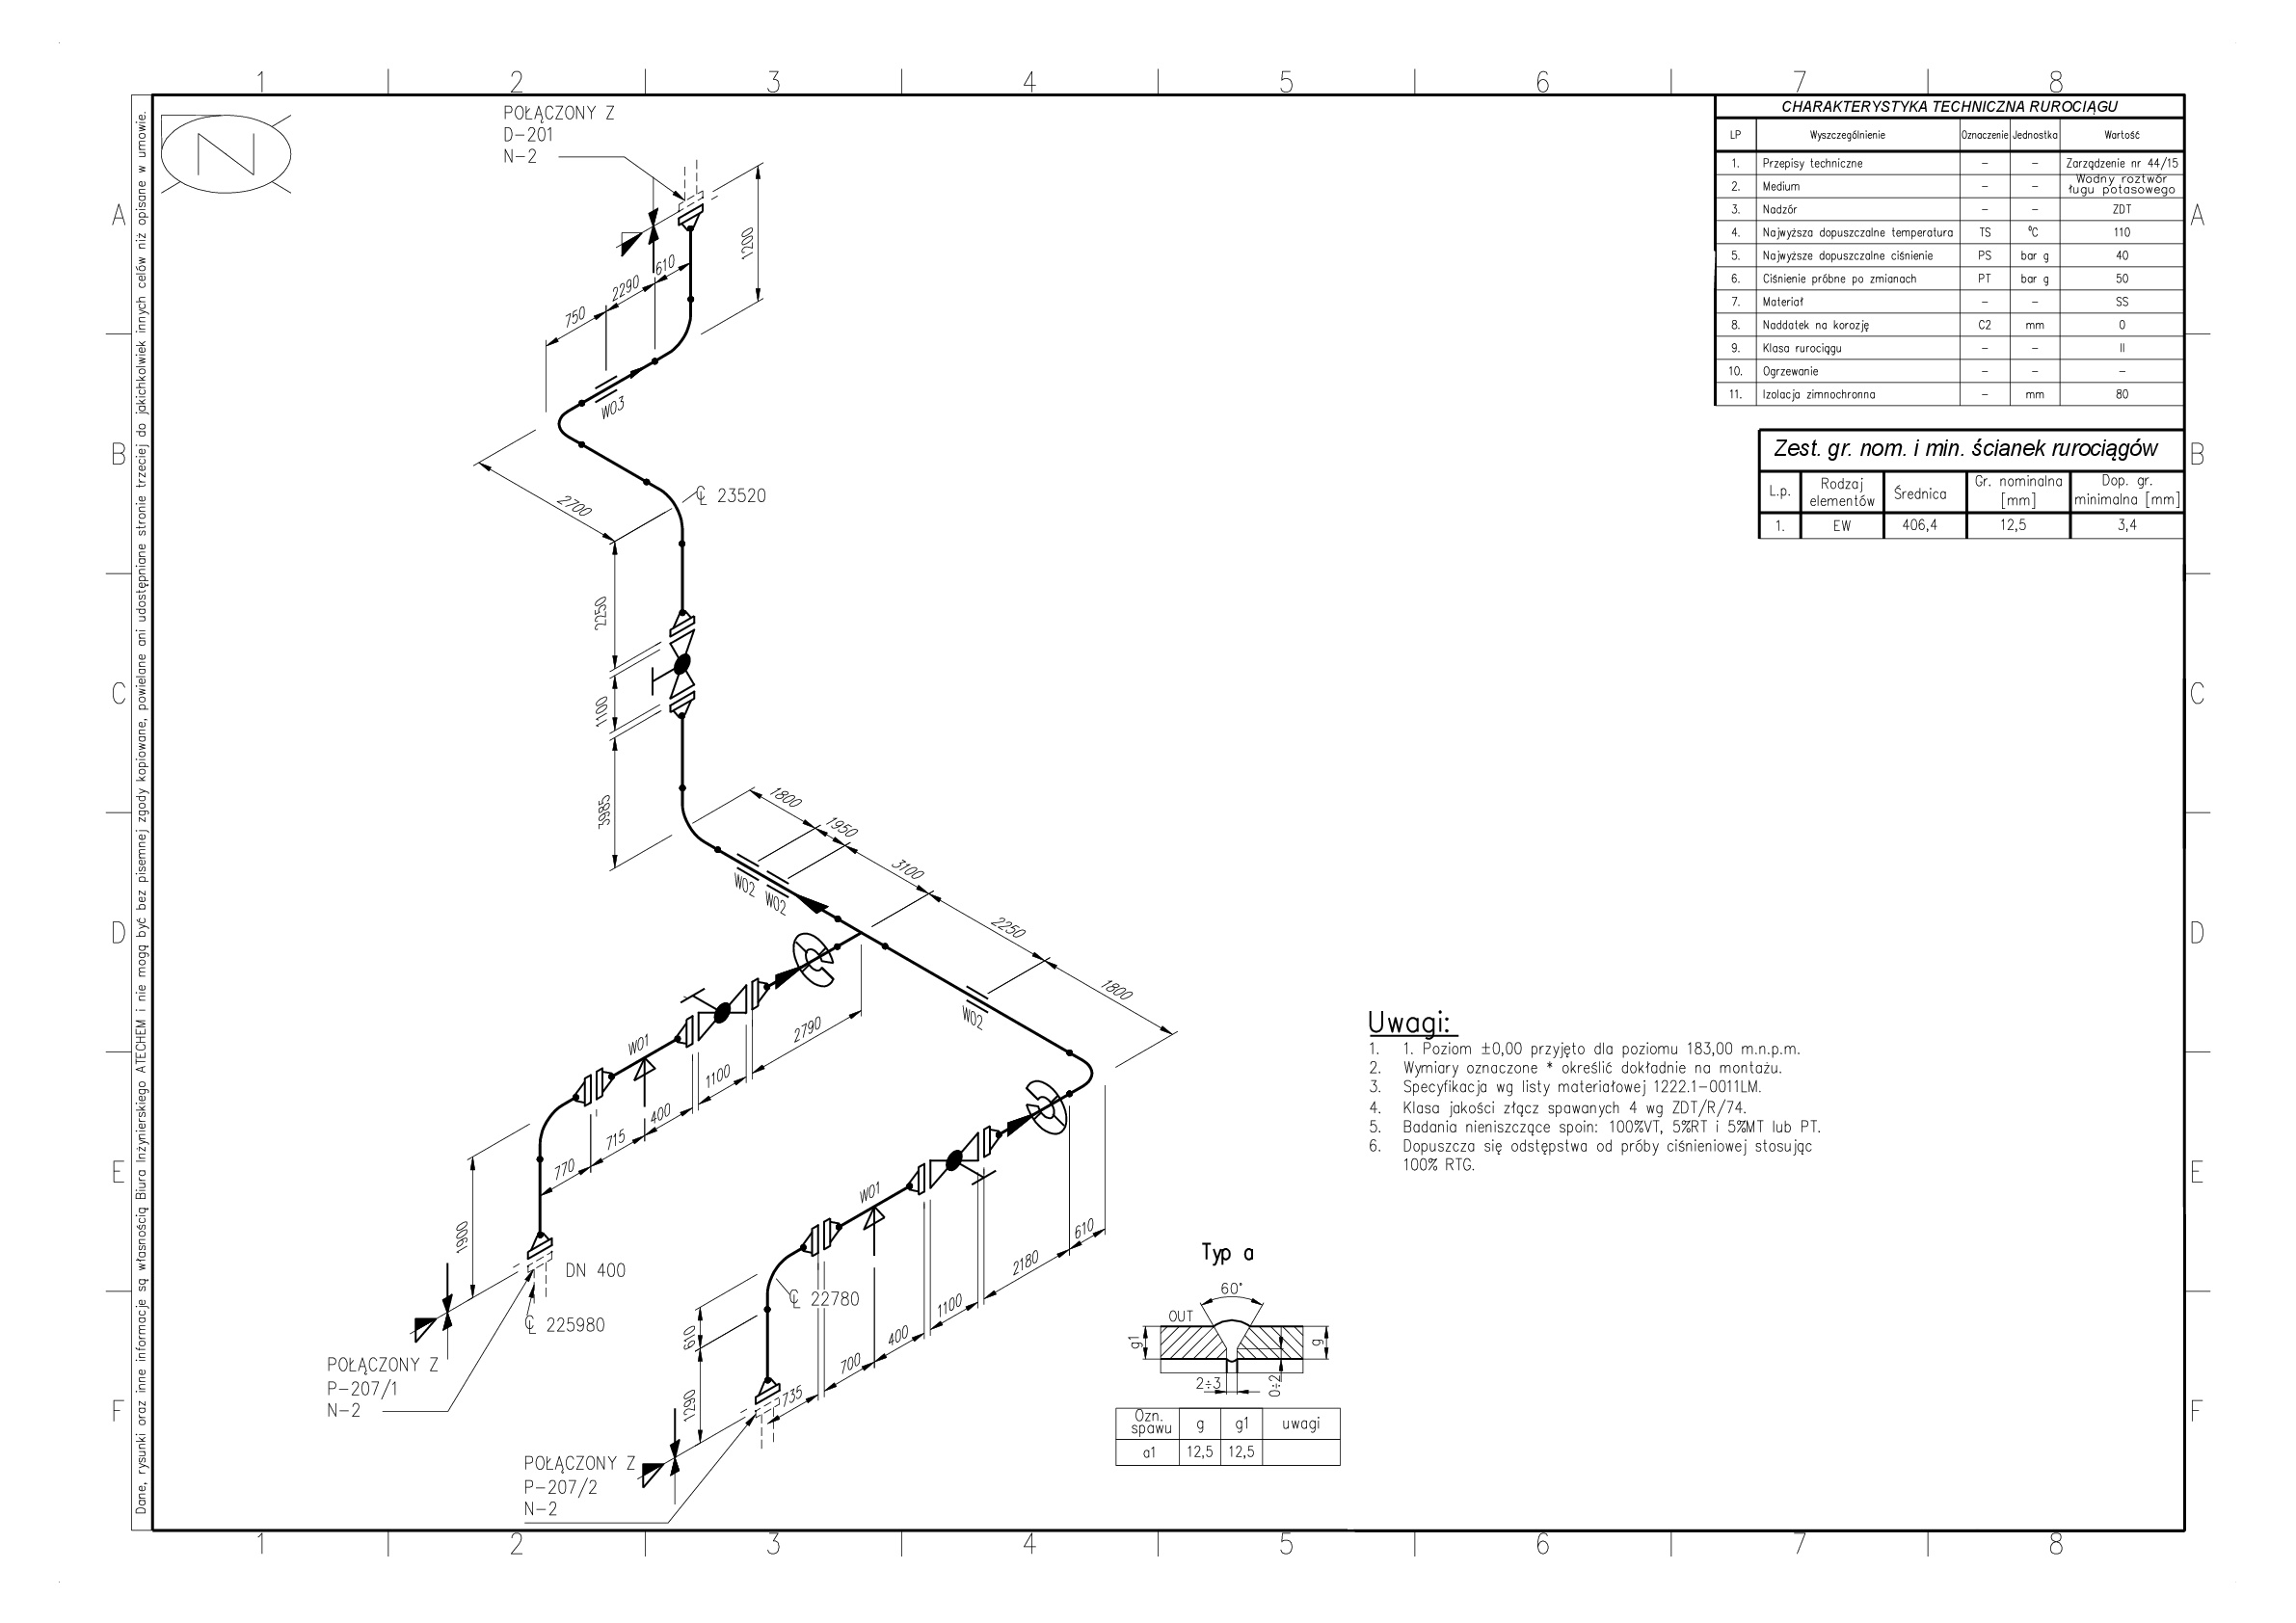 Biuro Inynierskie Atechem Hvac Isometric Drawing Generated From The 3 D Model